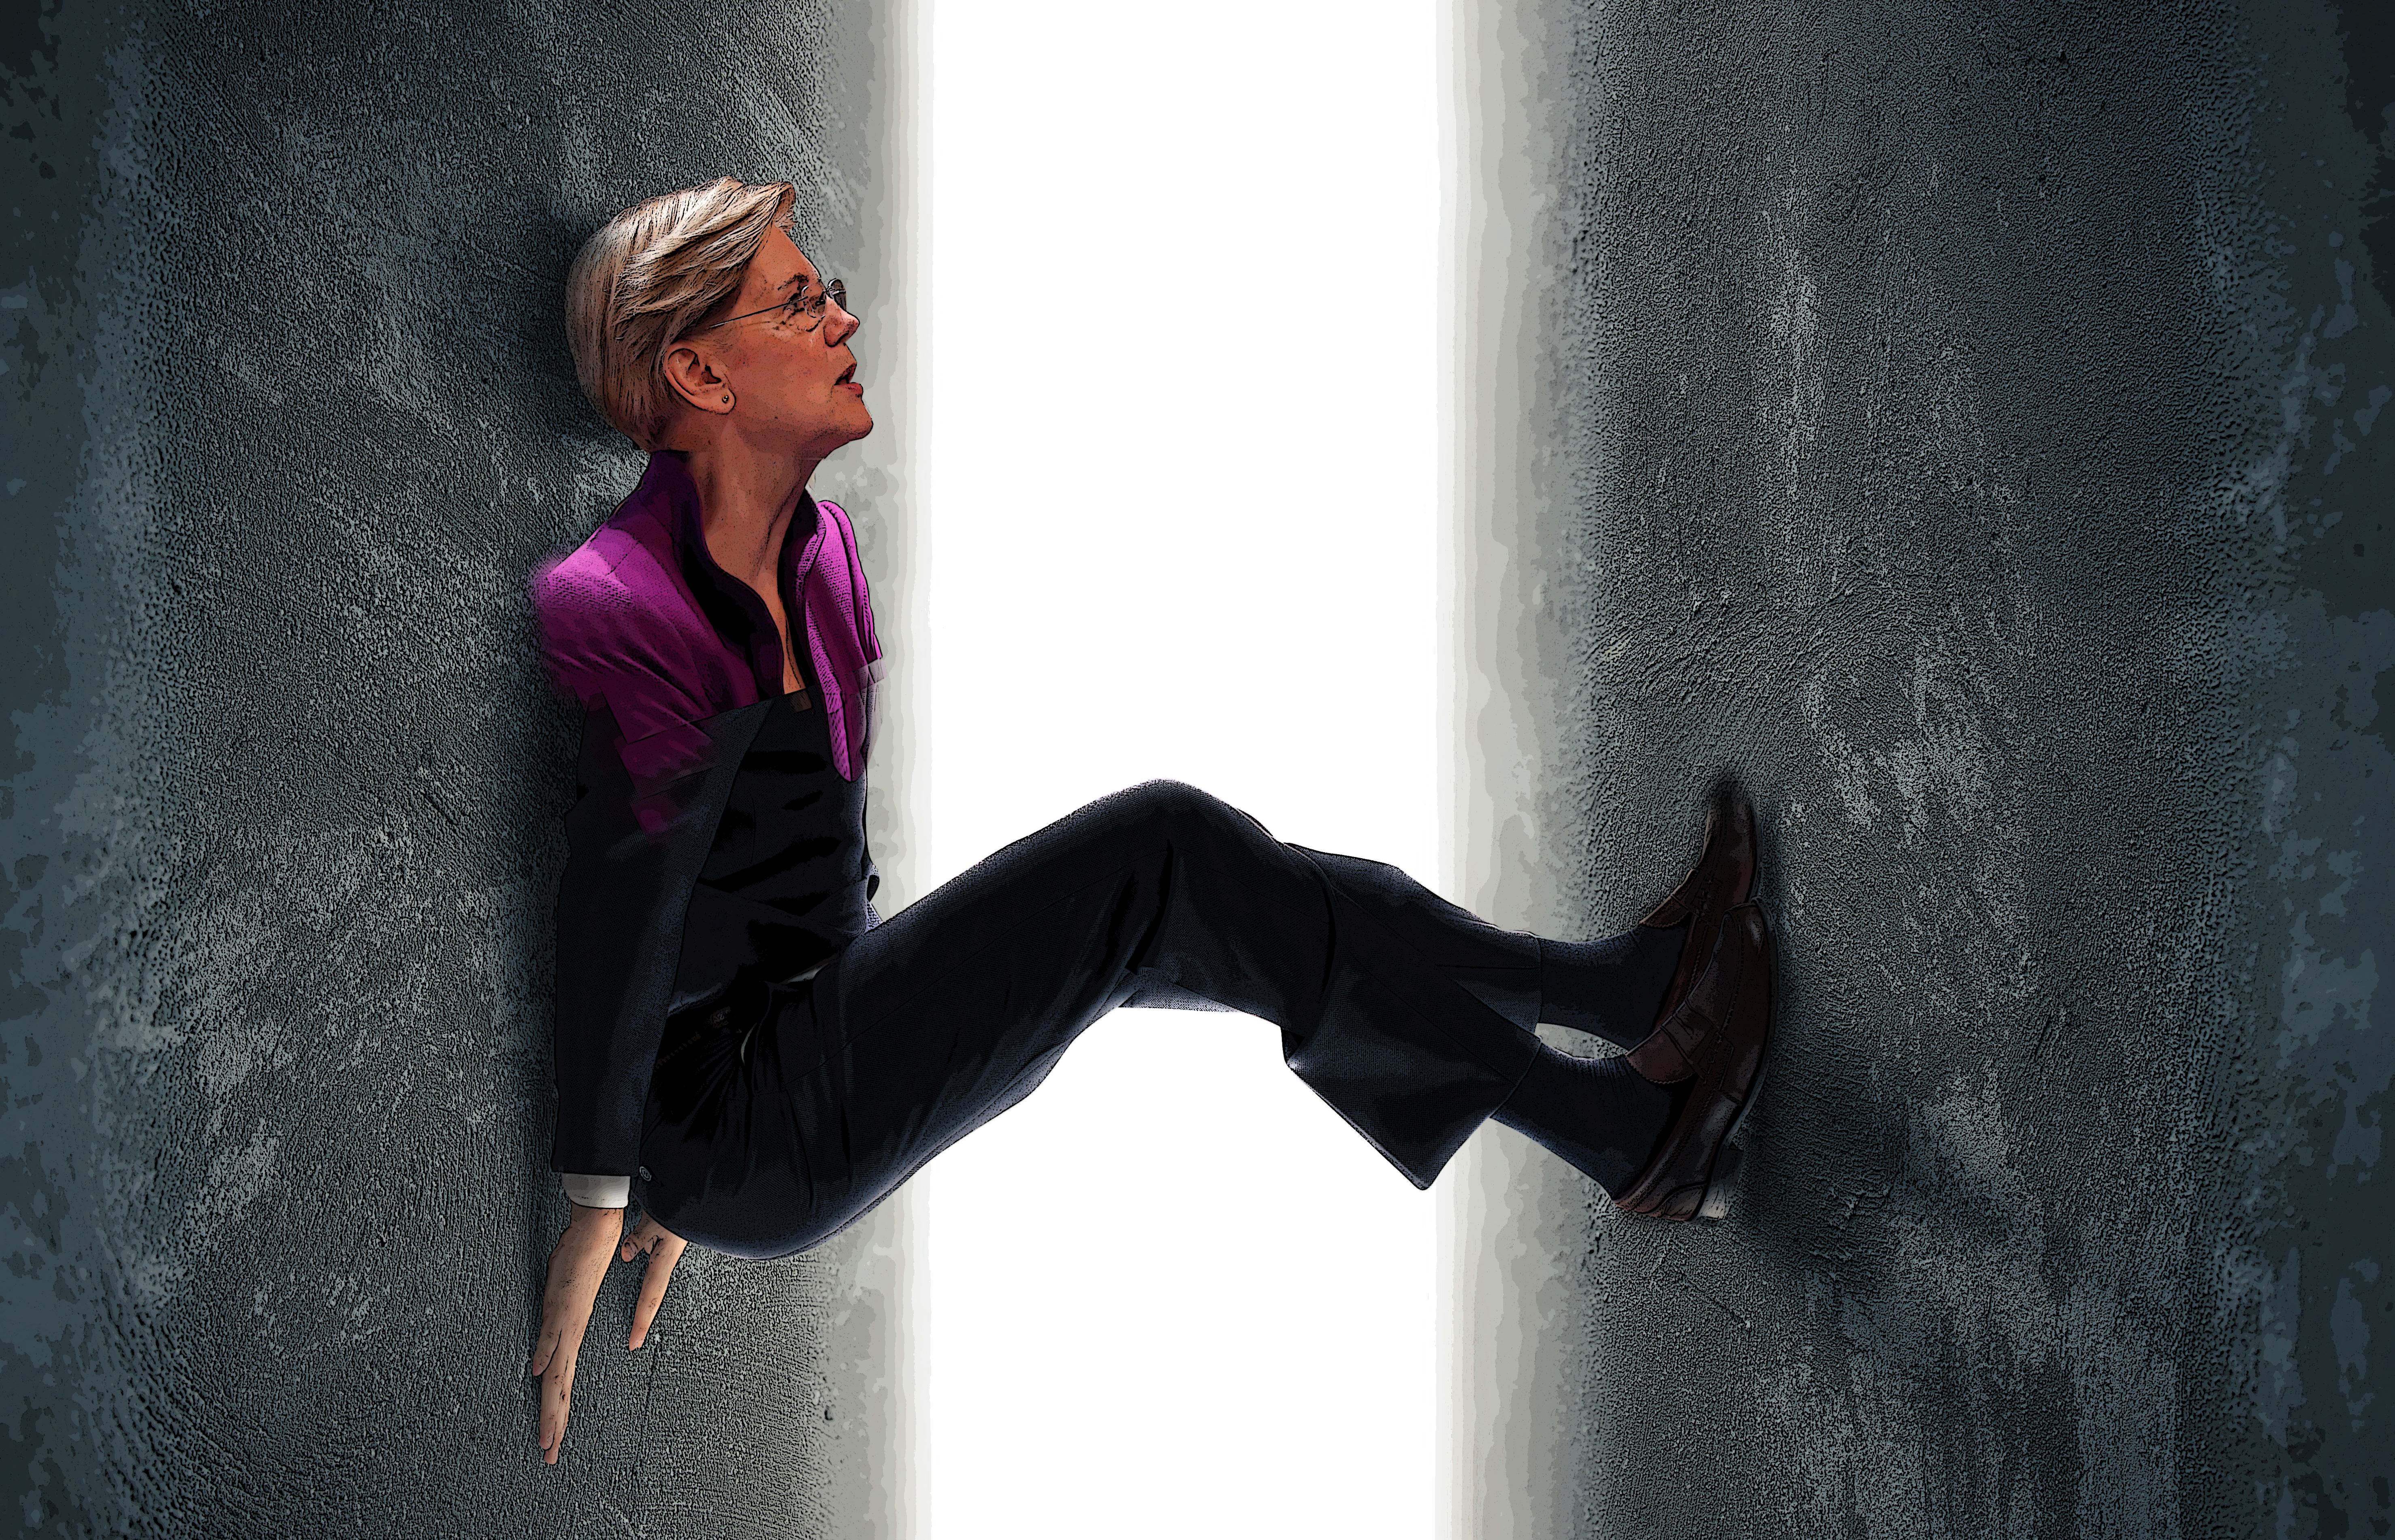 18 Street Porn elizabeth warren is attacked from both left and right on dna